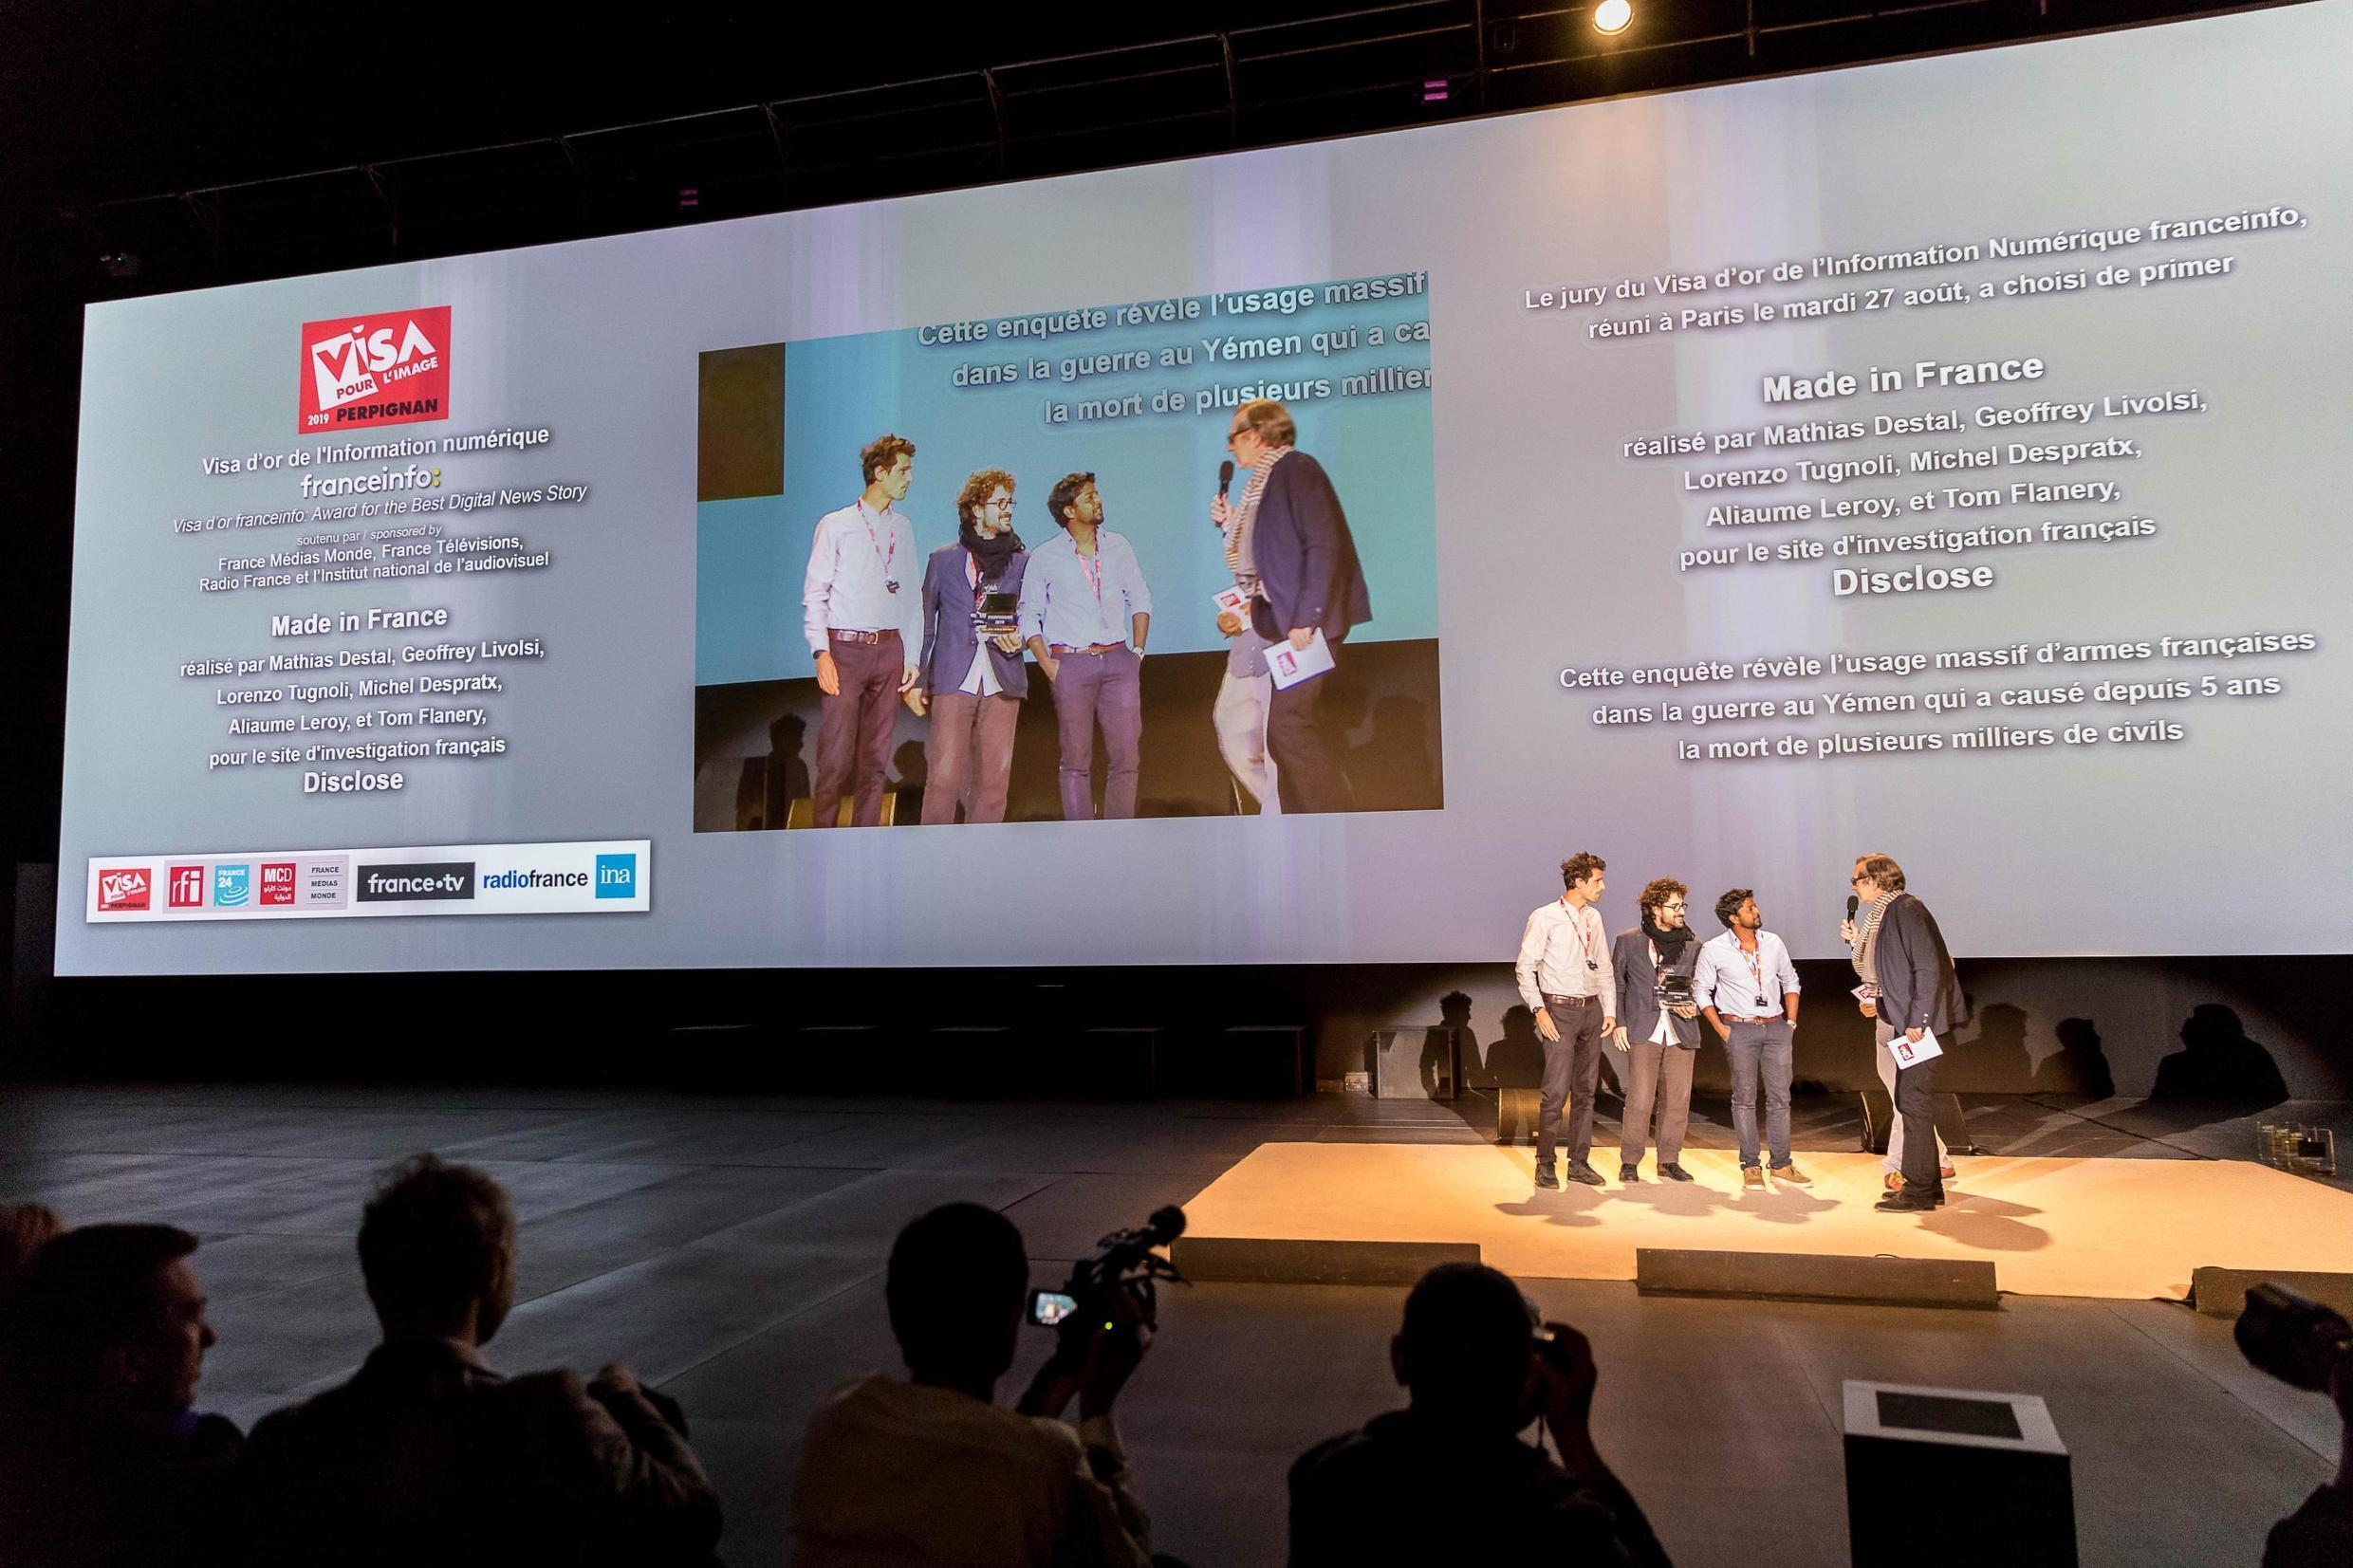 Visa D'or prize for Best Digital News Story awarded to the team at Disclose, September 5, 2019